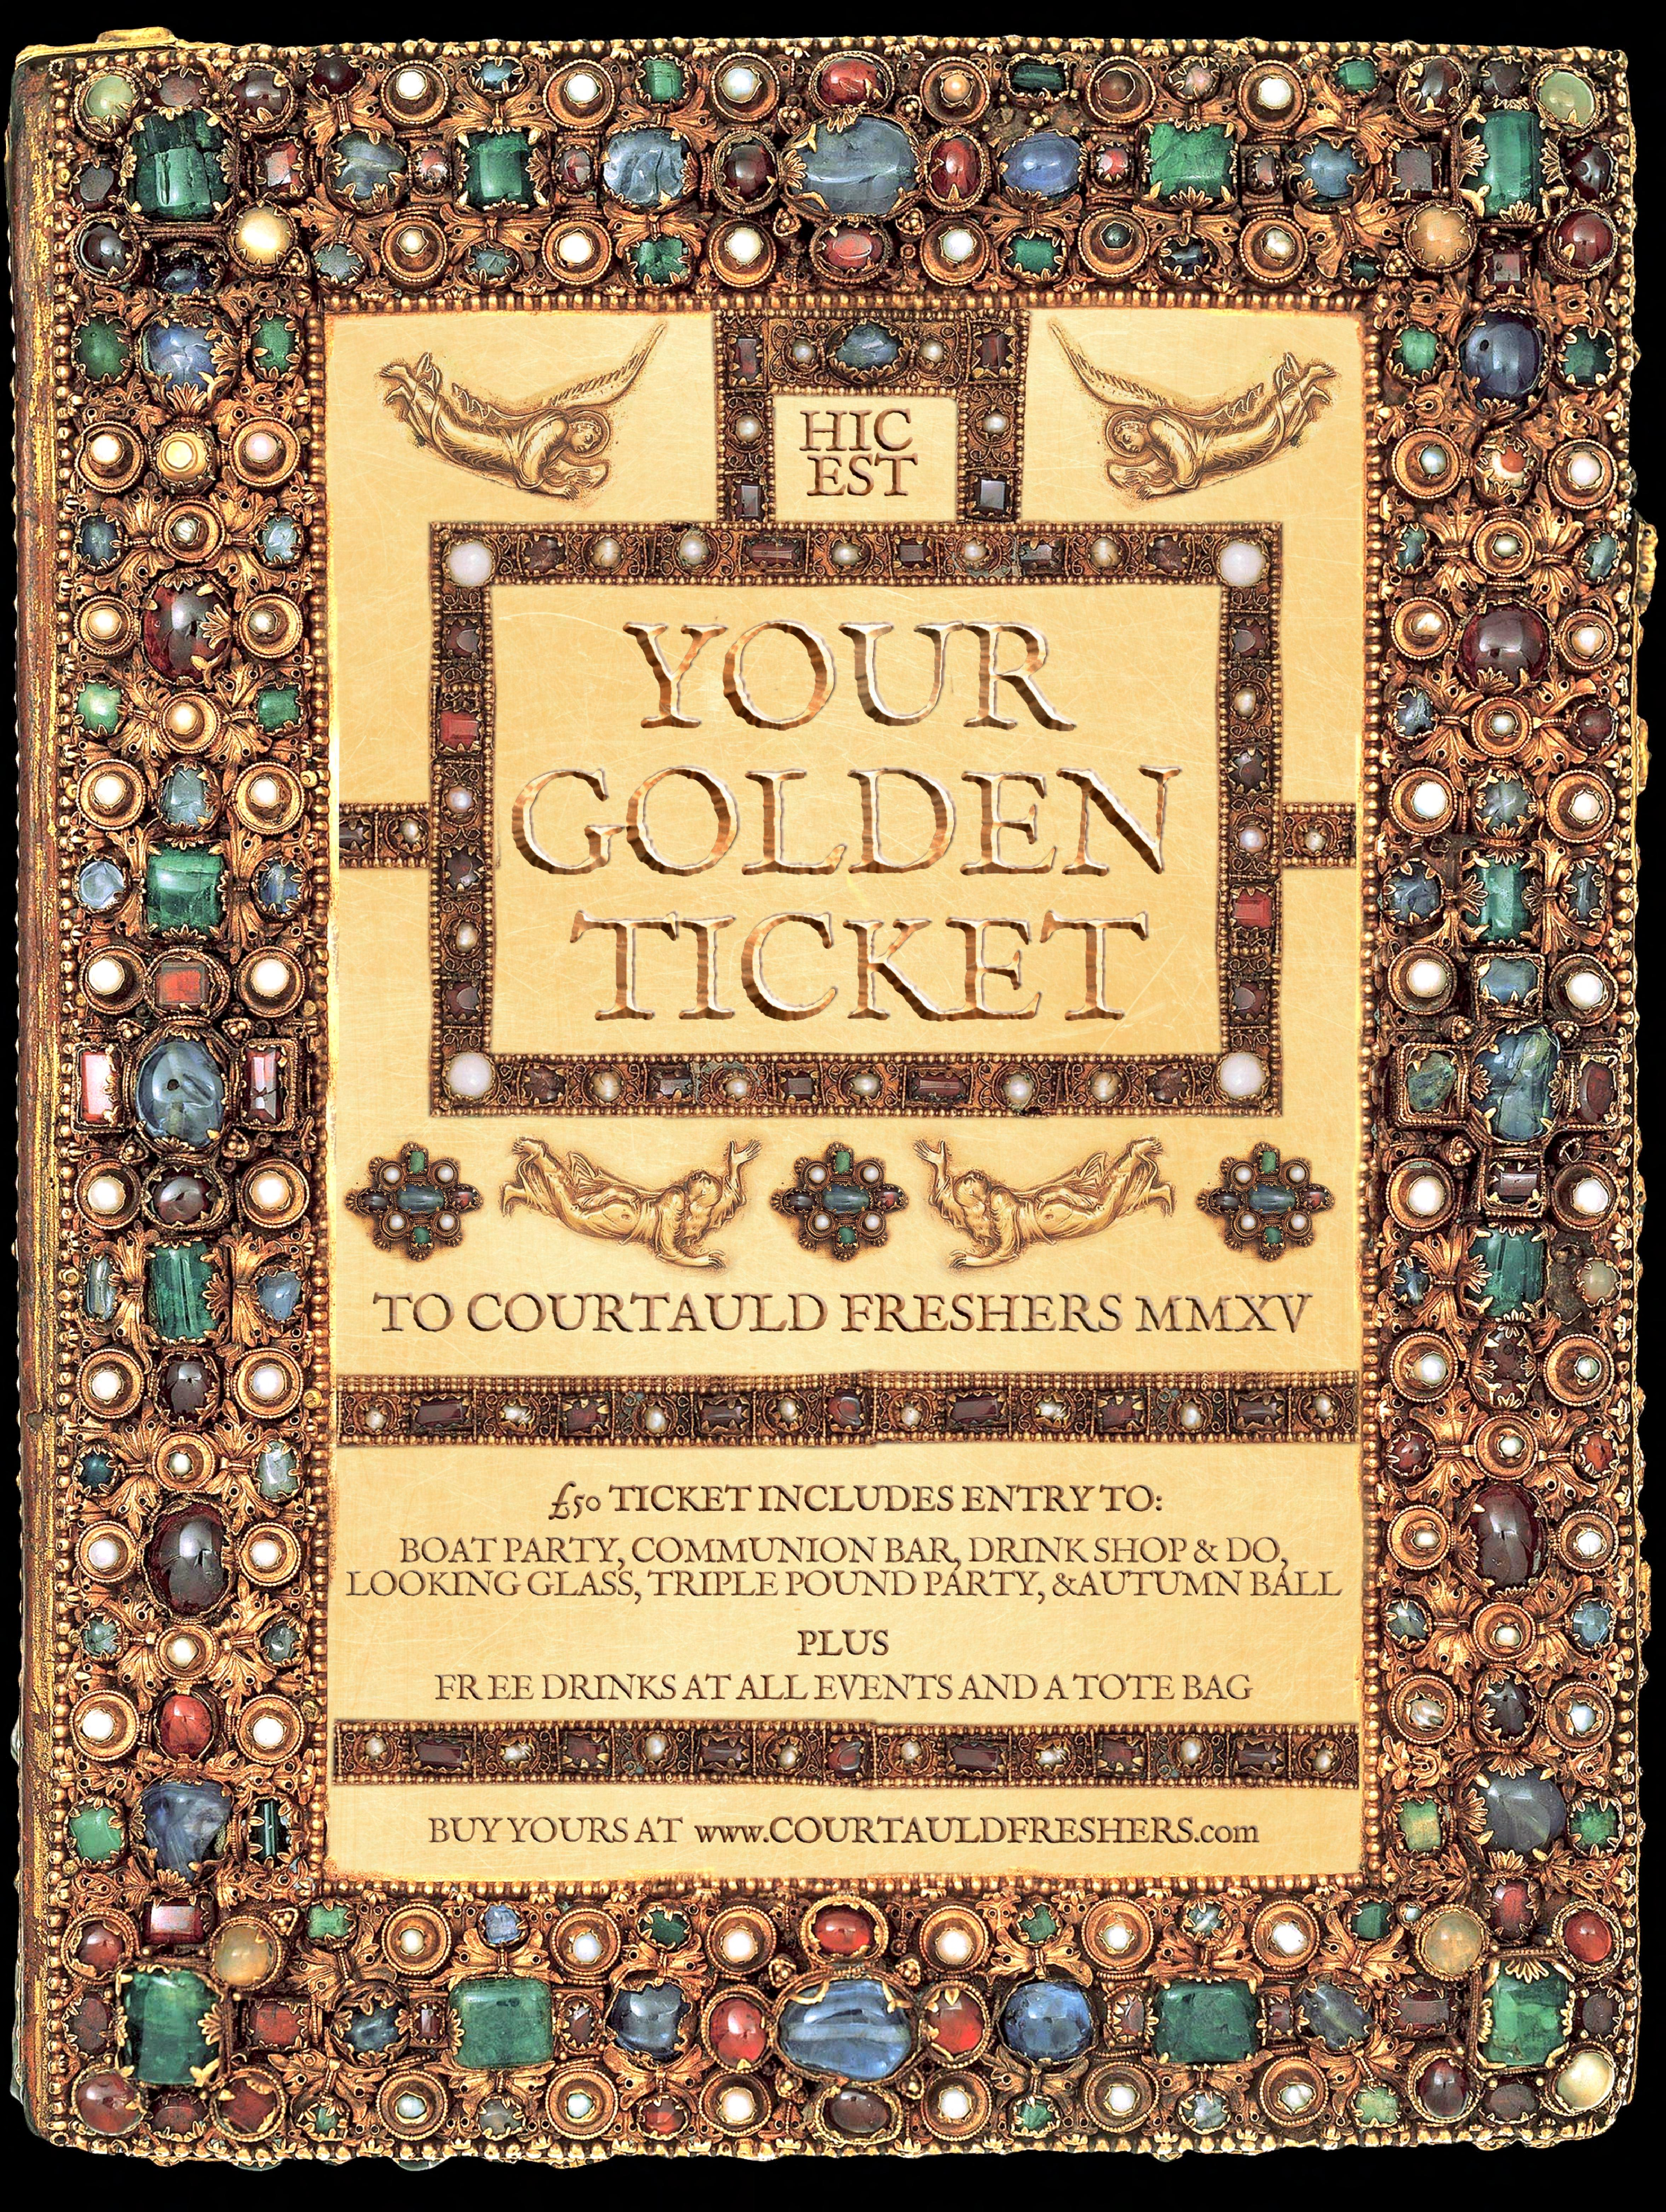 GoldenTicket-poster-page-001